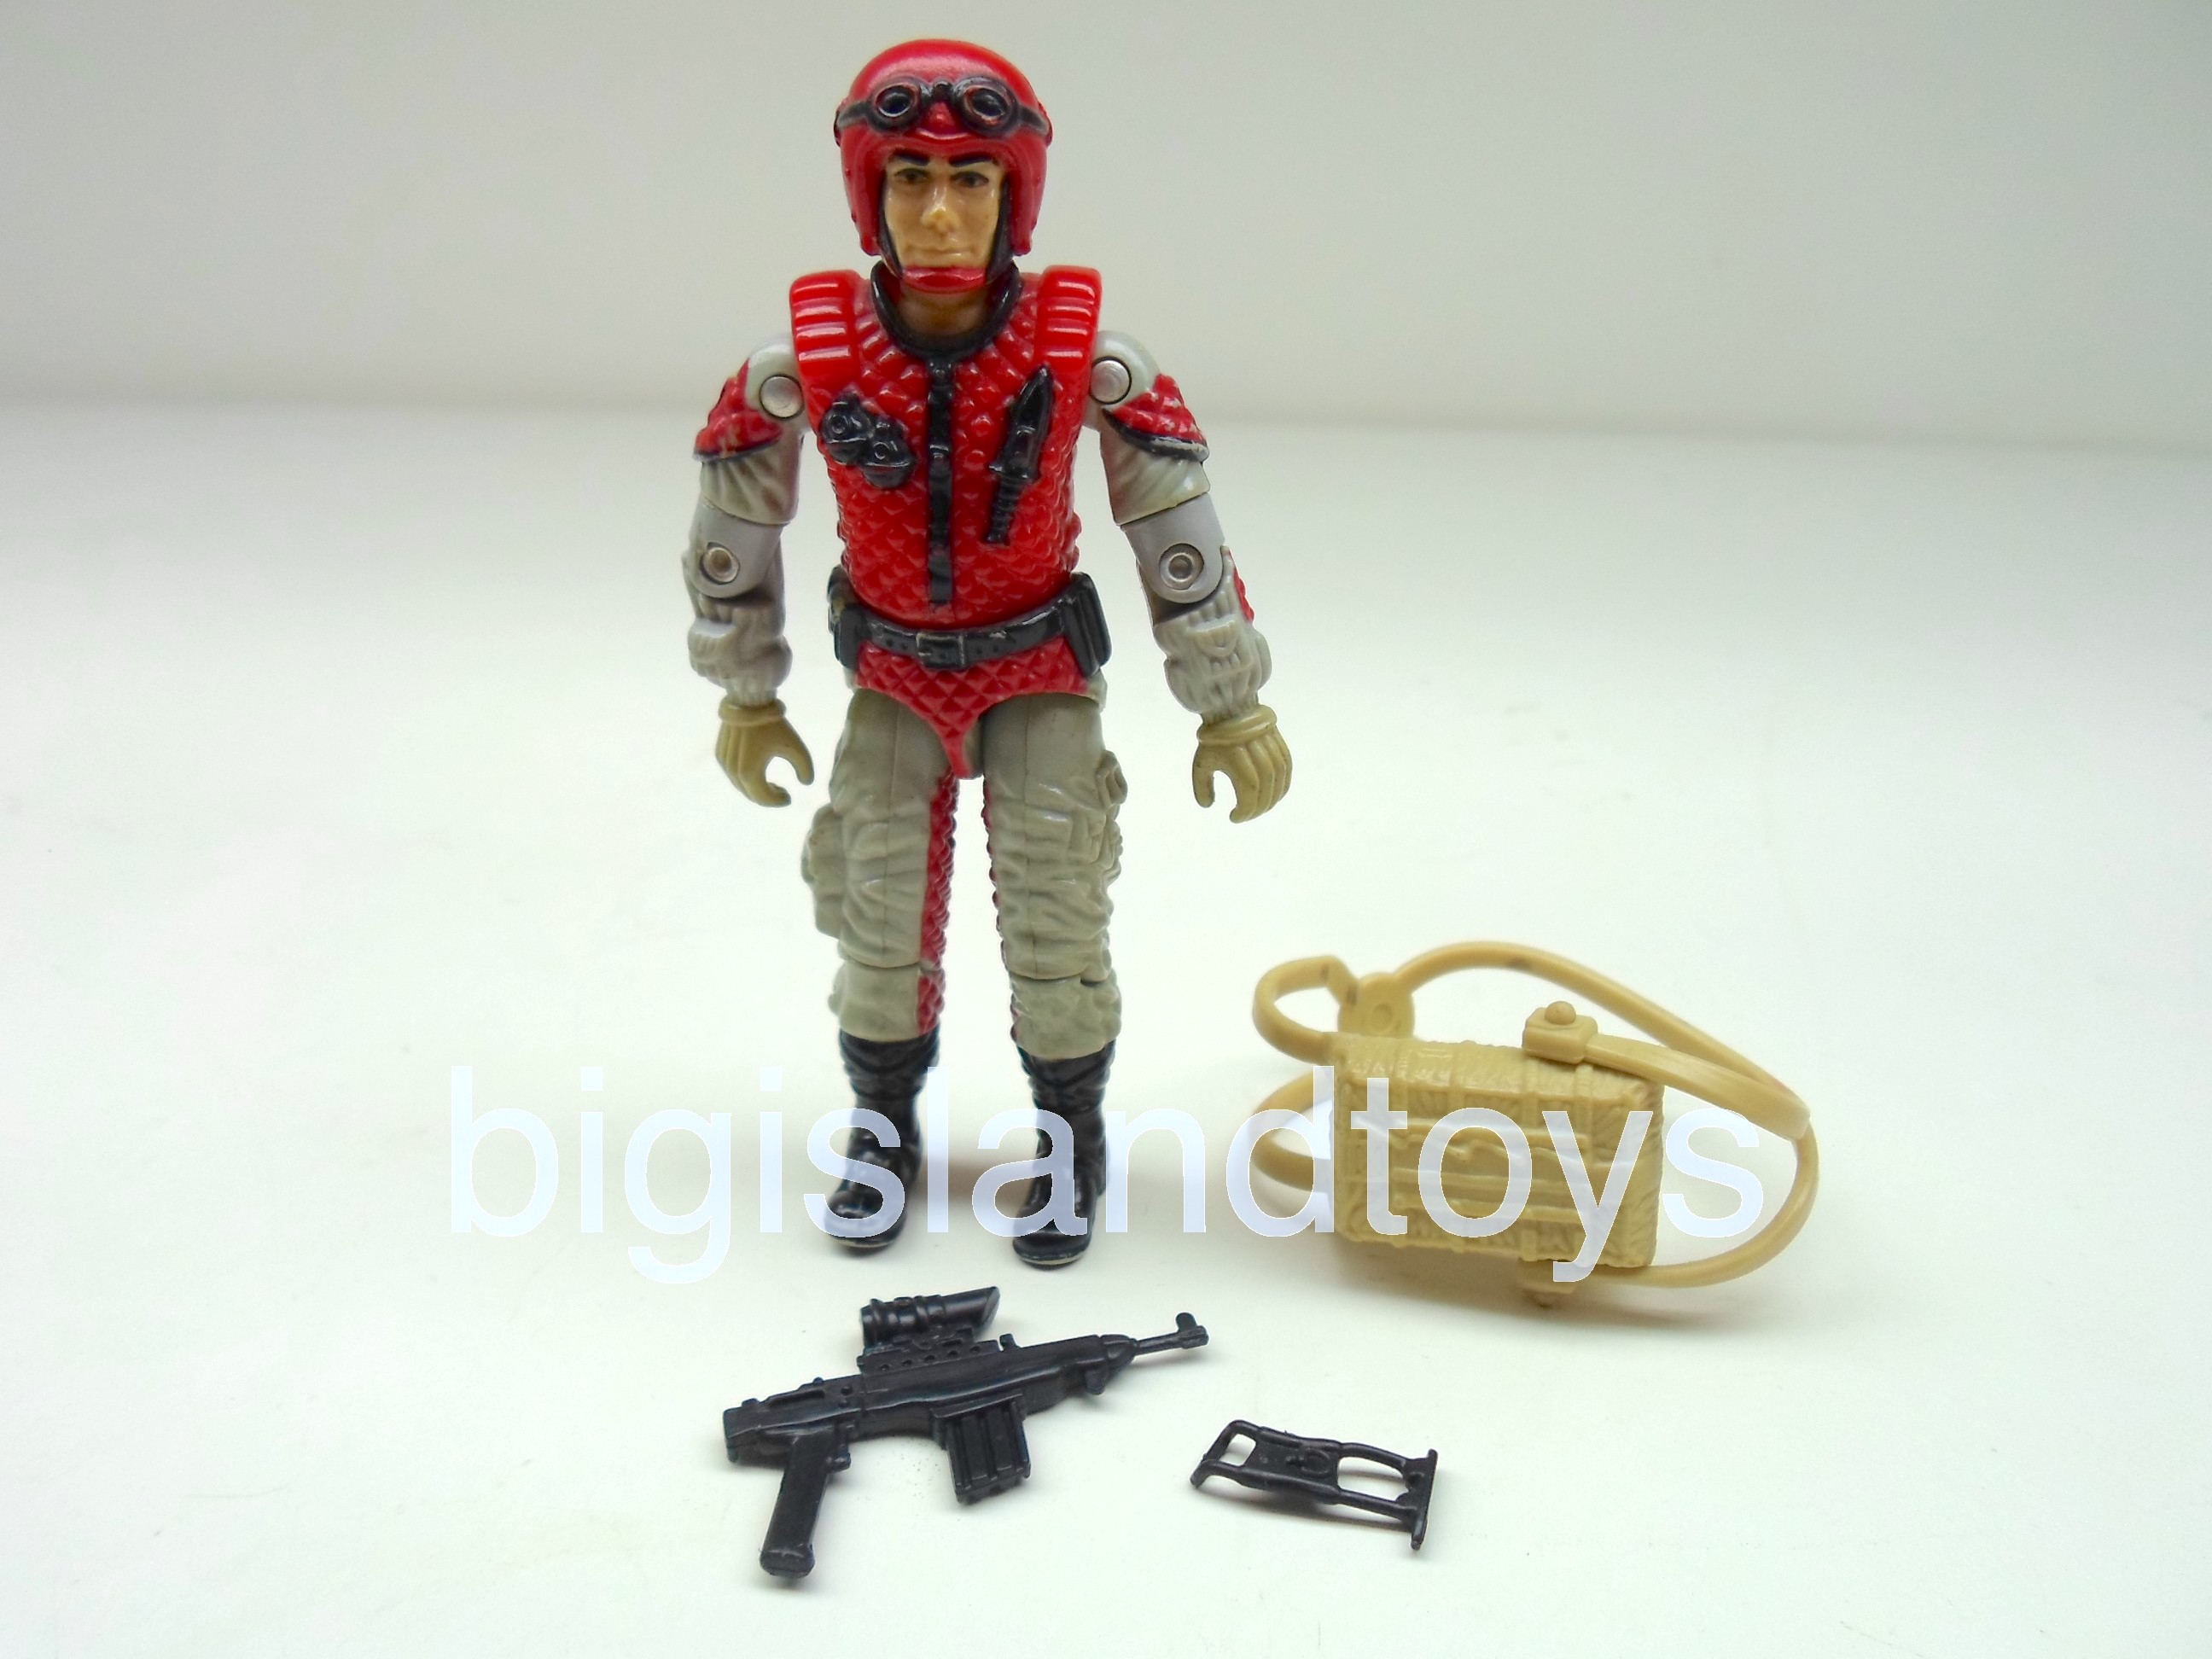 GI Joe 1987 Figures   Crazylegs